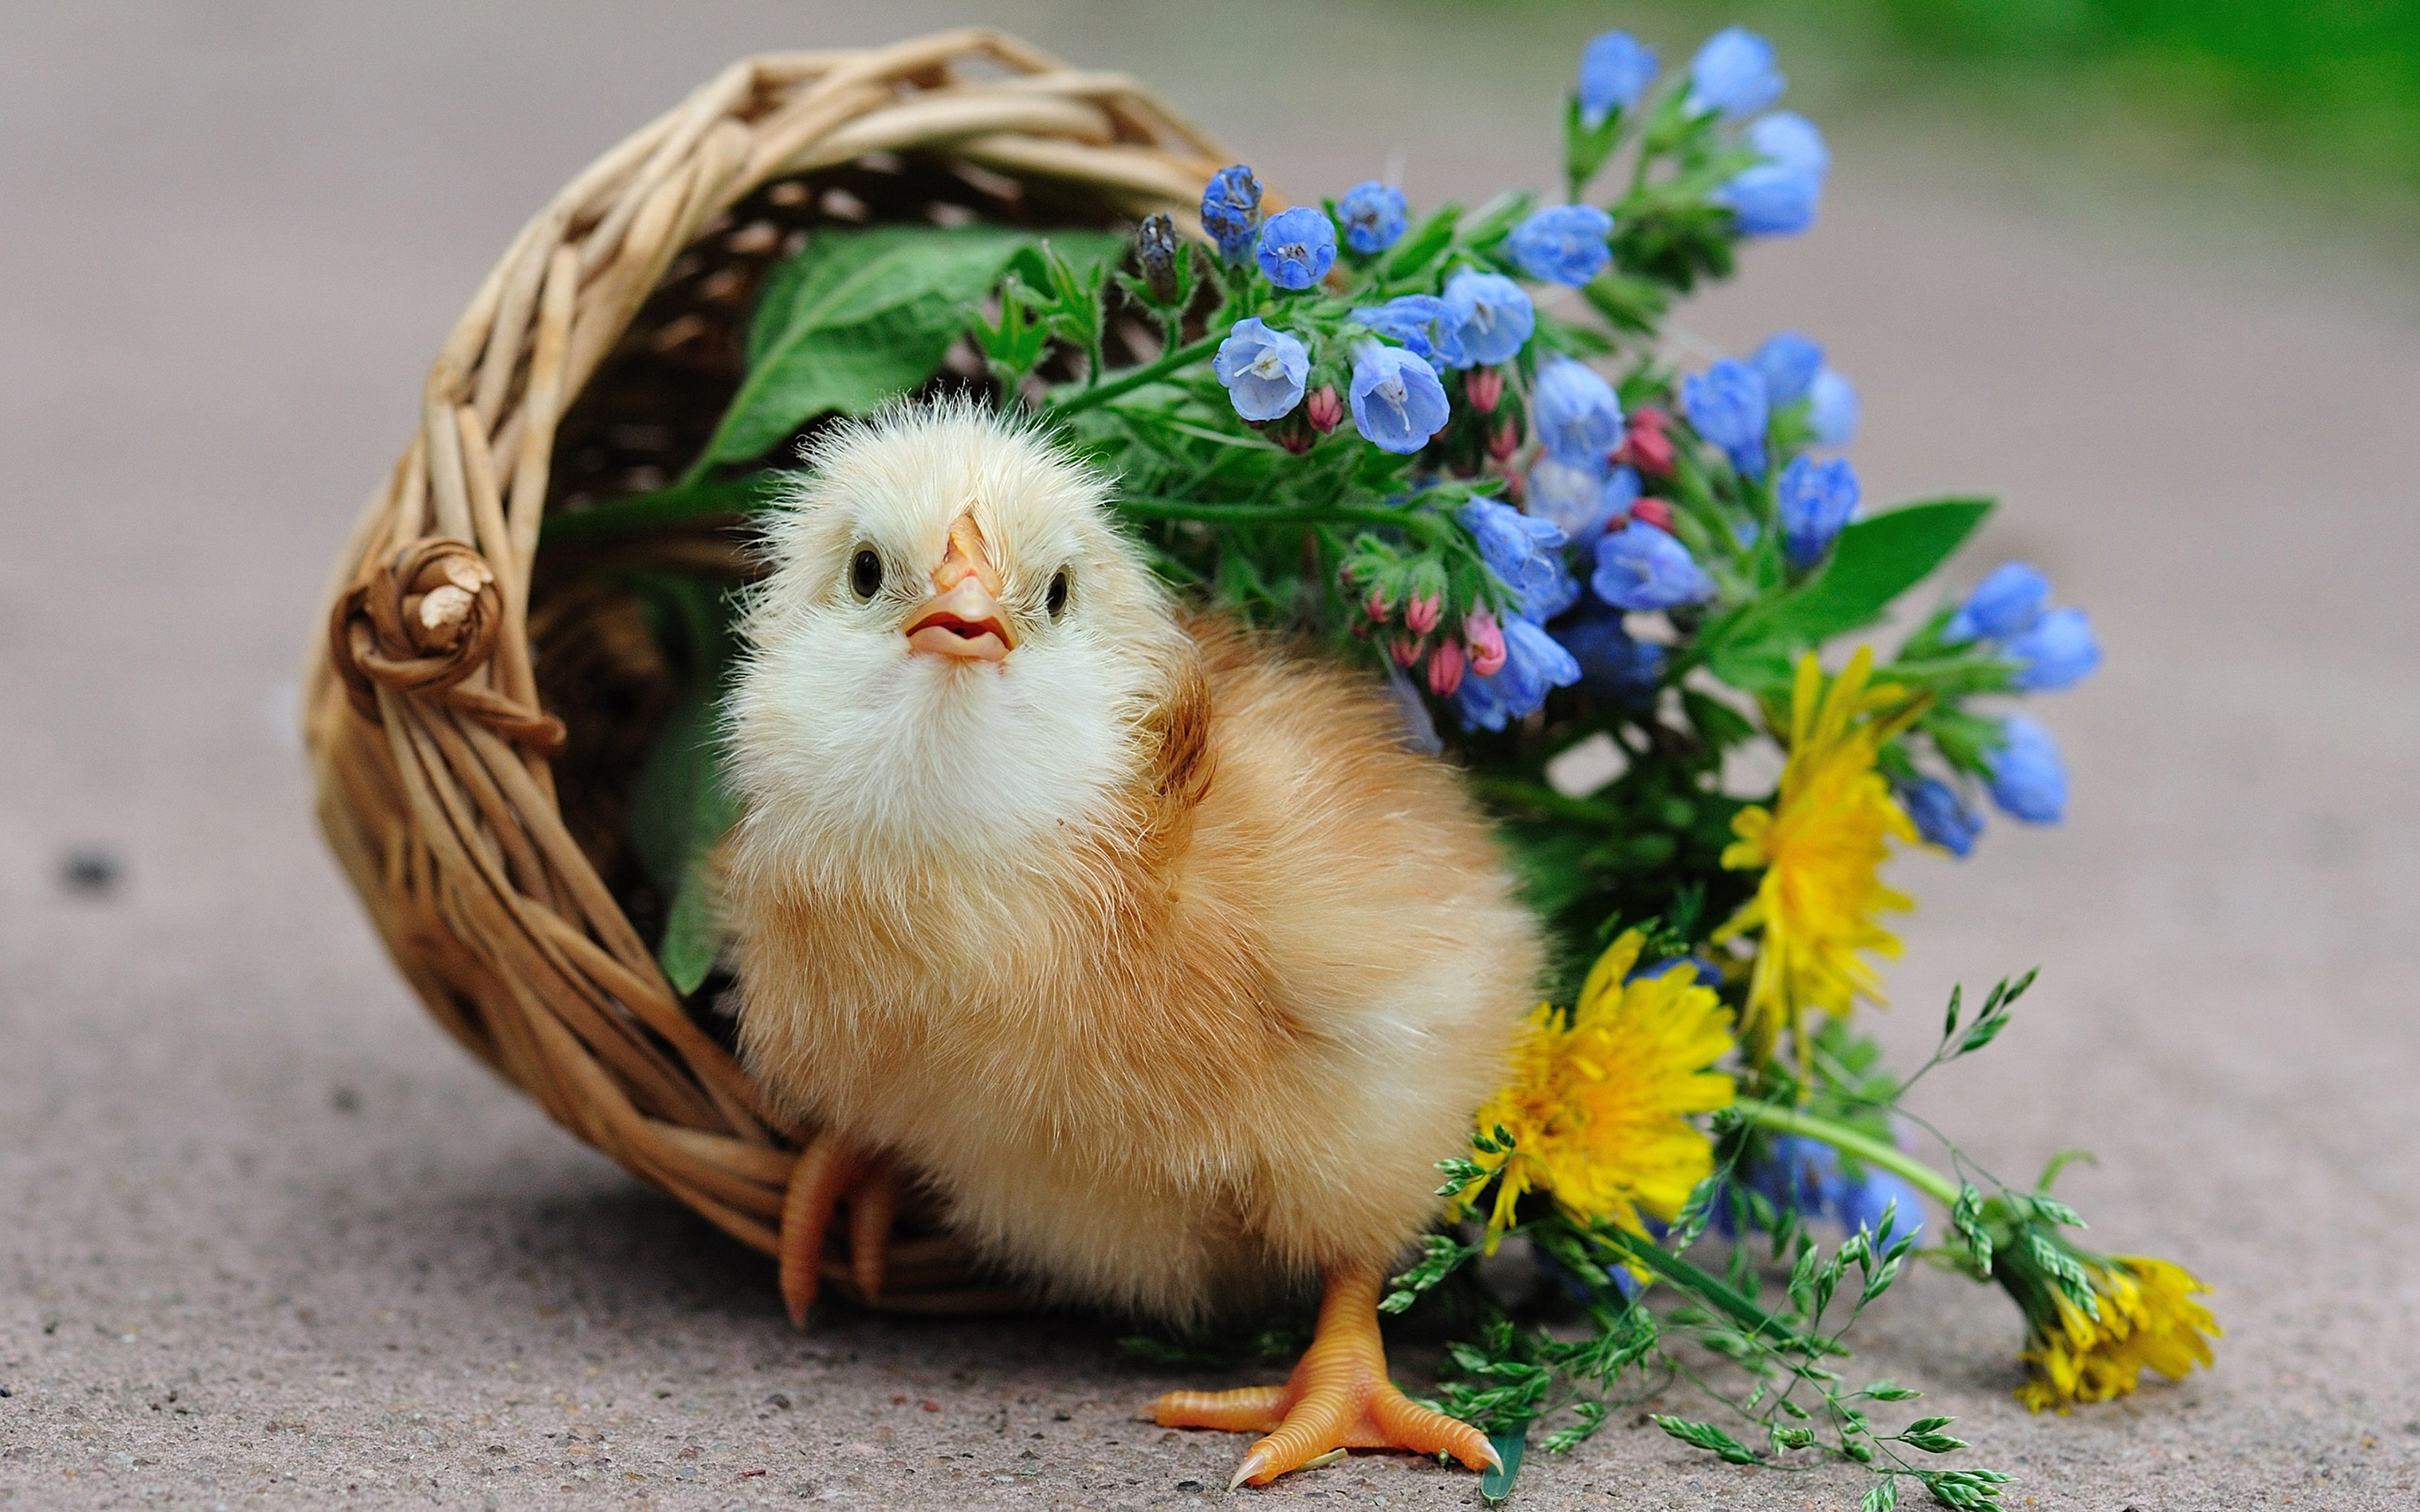 Little Chicken Cutes - Little Chicken Cutes